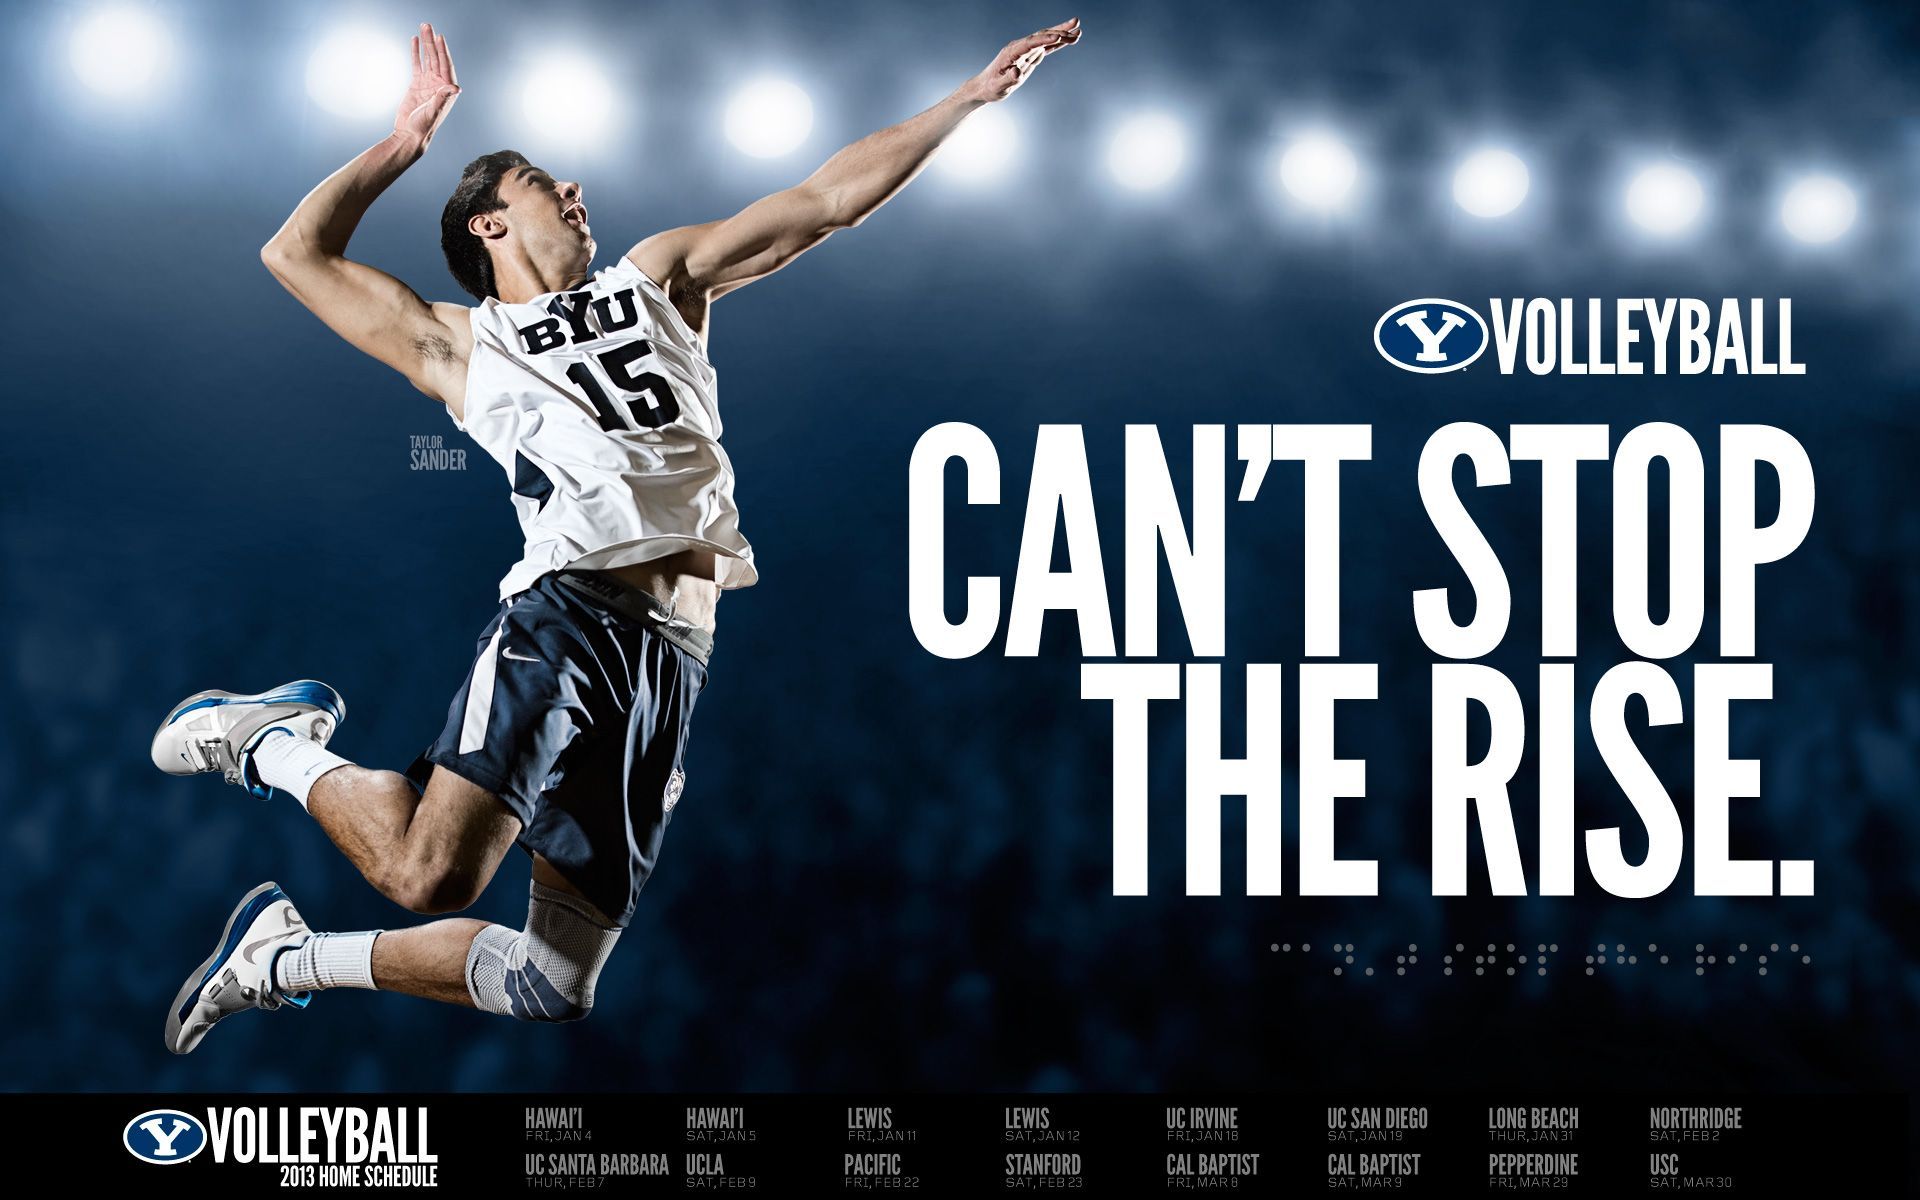 Can T Stop The Rise Byu Volleyball Volleyball Quotes Volleyball Wallpaper Inspirational Volleyball Quotes